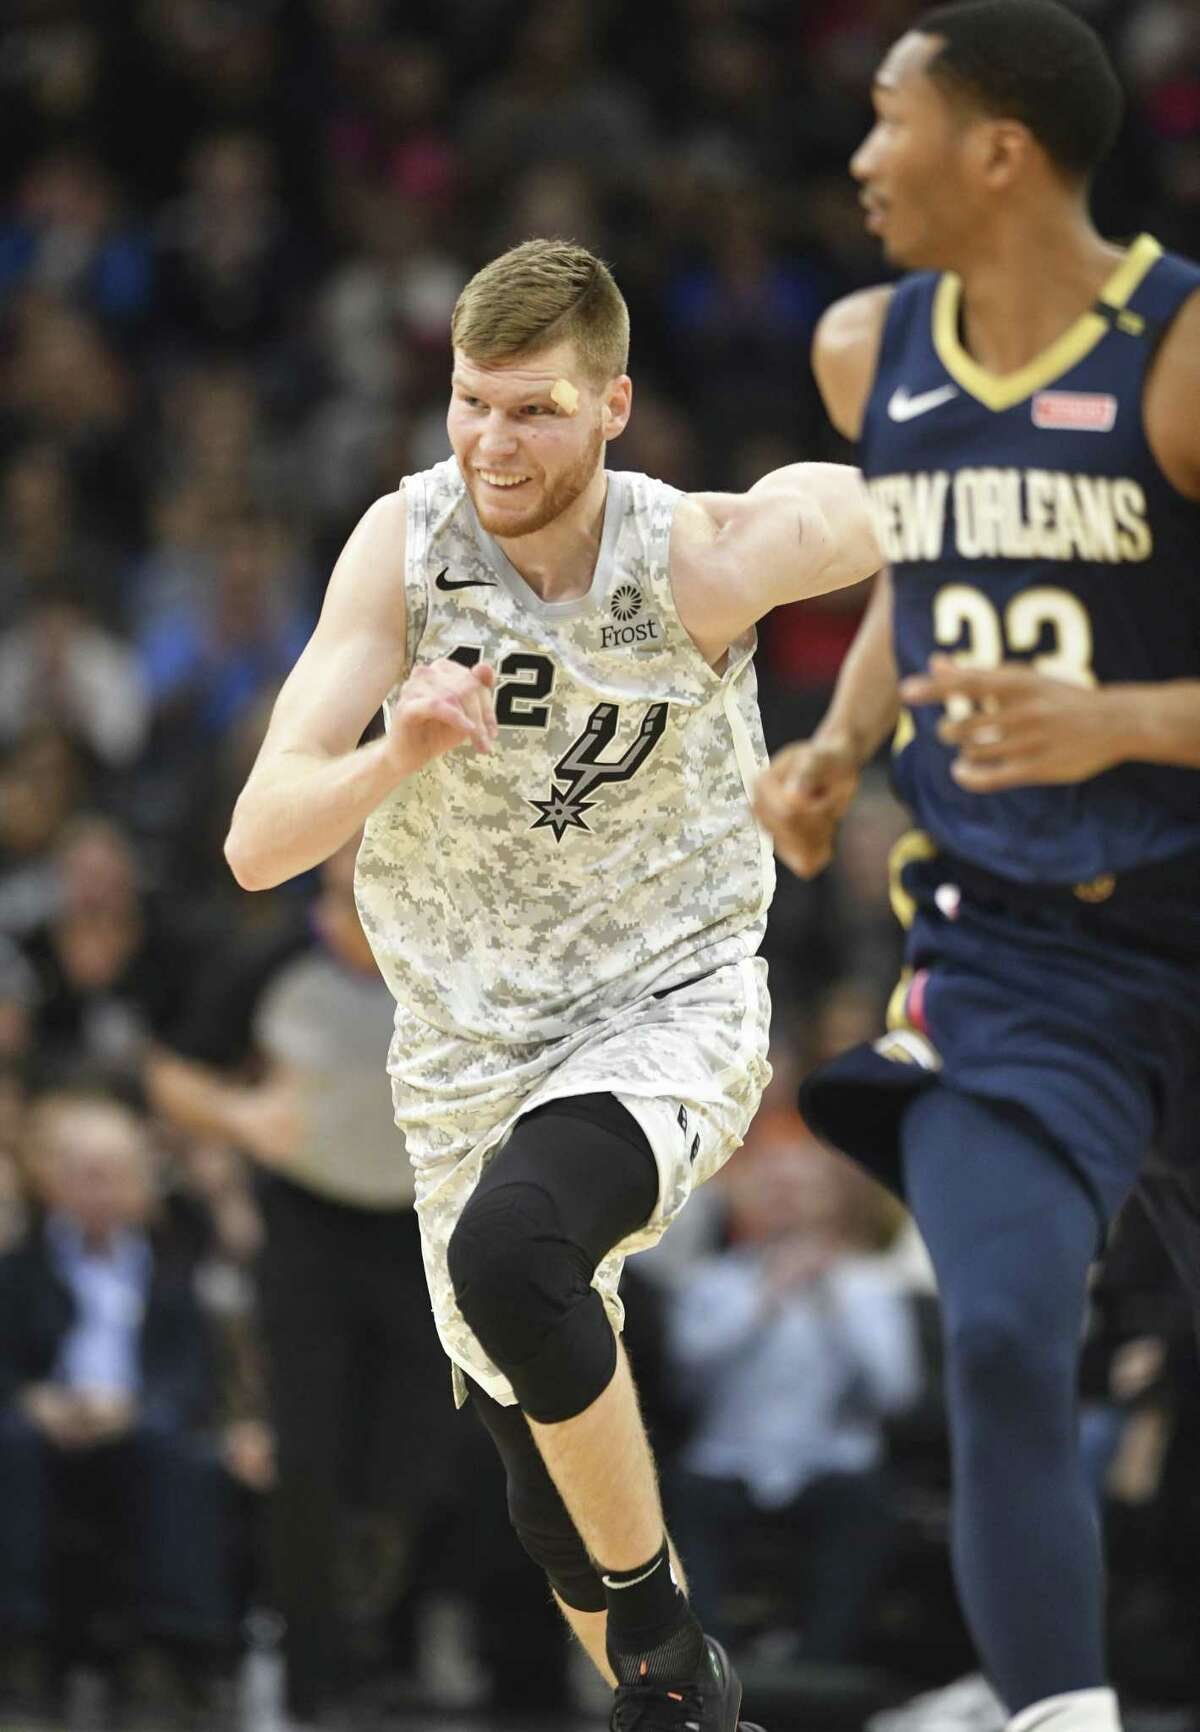 Davis Bertrans of the San Antonio Spurs runs to defend after scoring against the New Orleans Pelicans during NBA action in the AT&T Center on Saturday, Feb. 2, 2019.